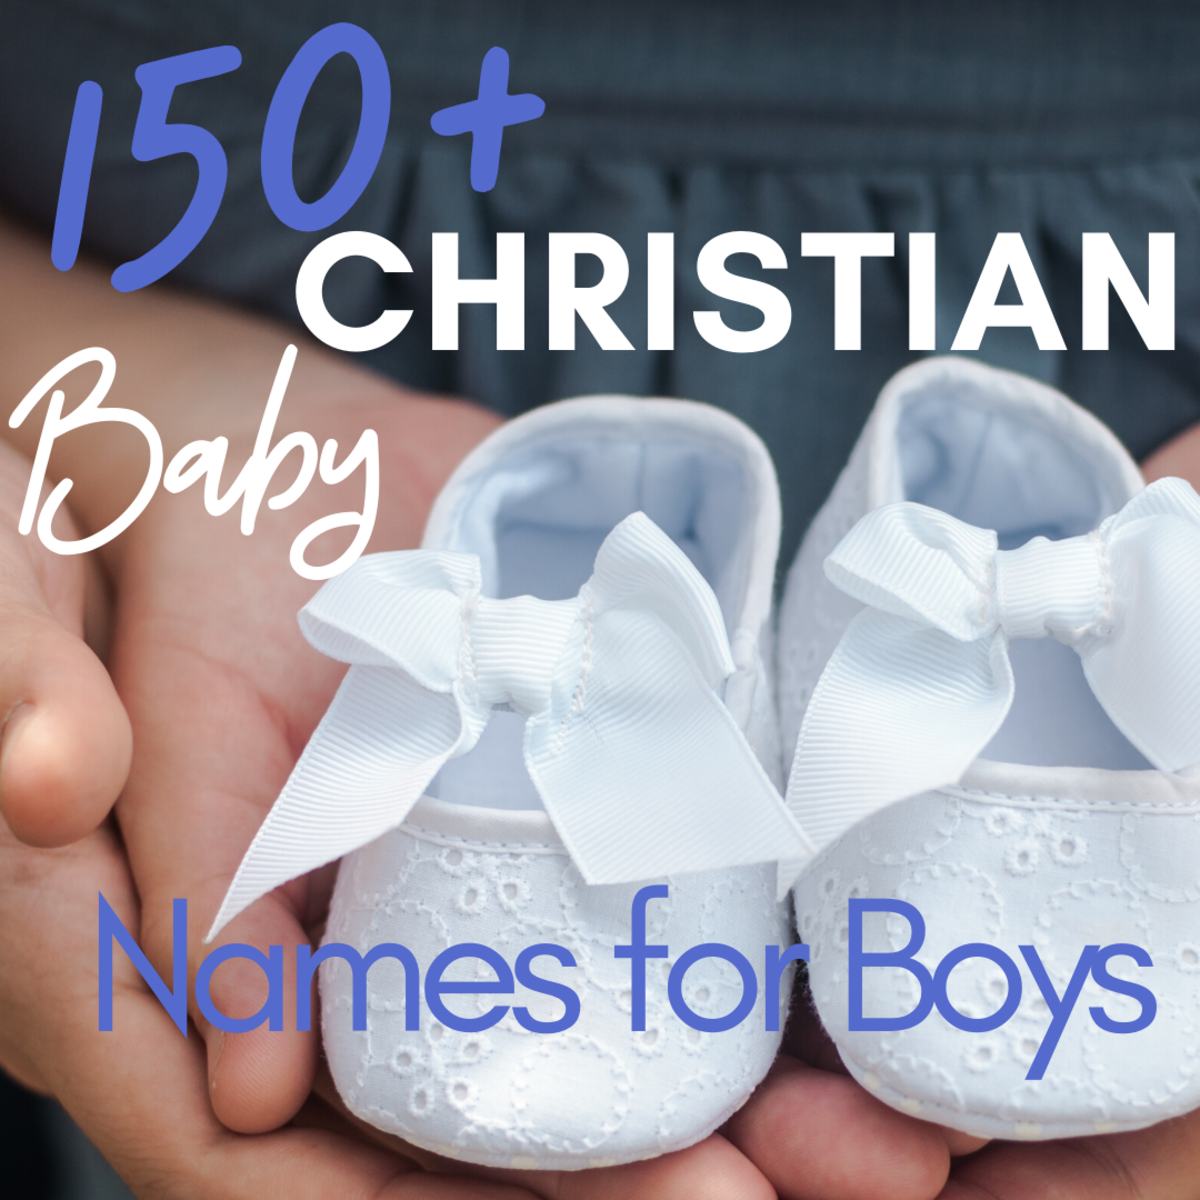 150+ Christian Baby Names for Boys